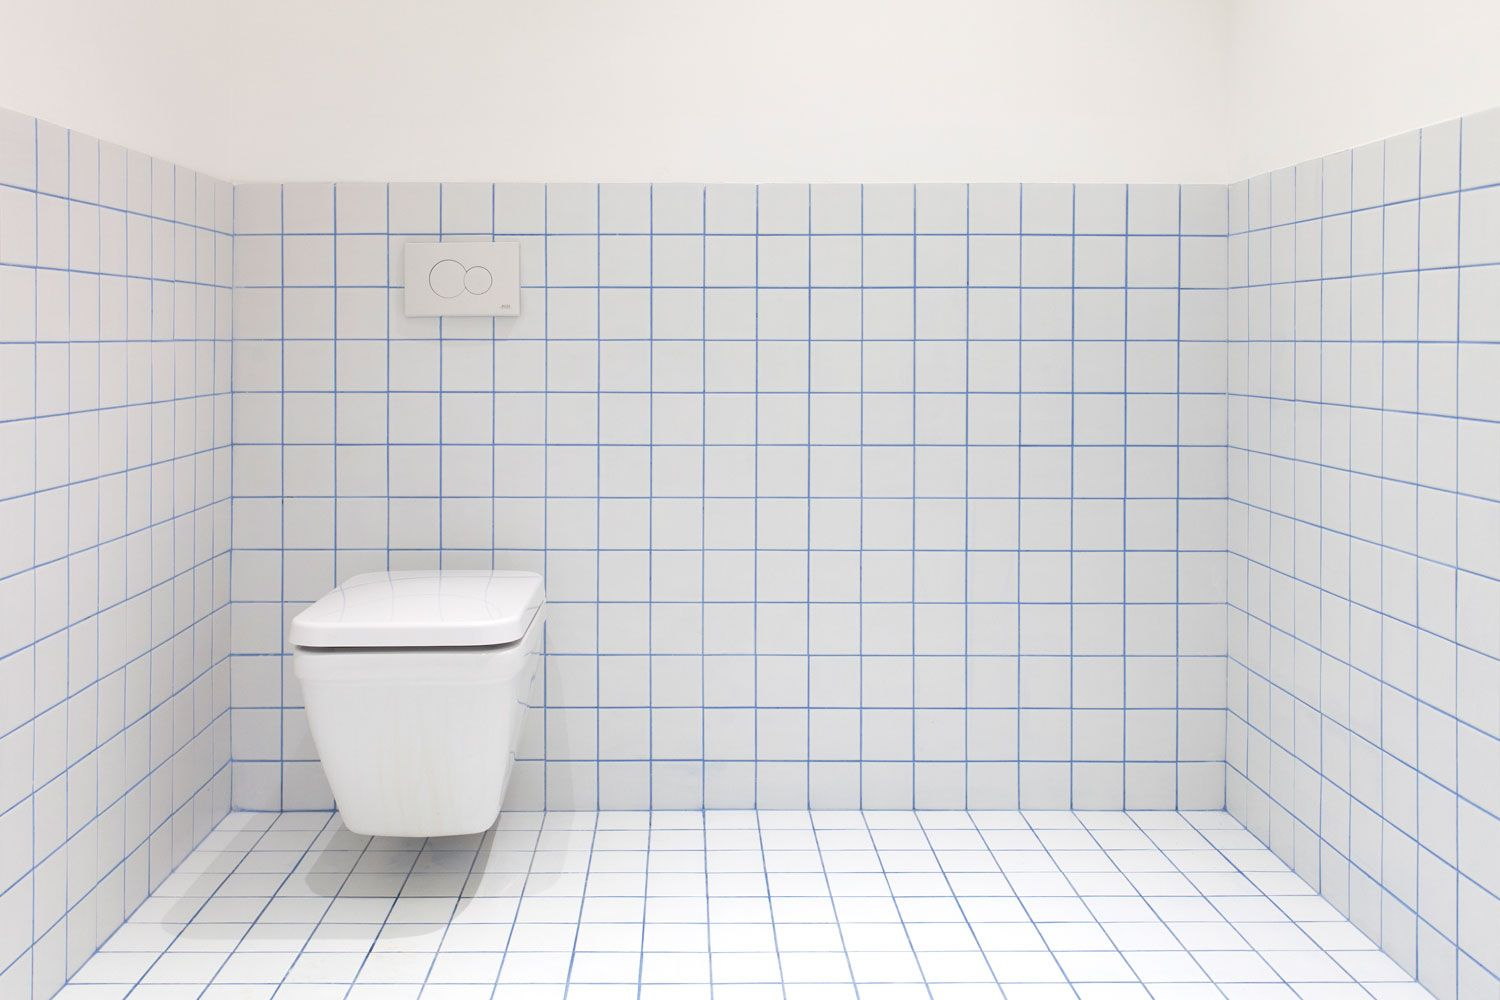 WC En Carreau De Céramique Blanc X Et Joints Bleu WC In White - 10x10 white ceramic tiles